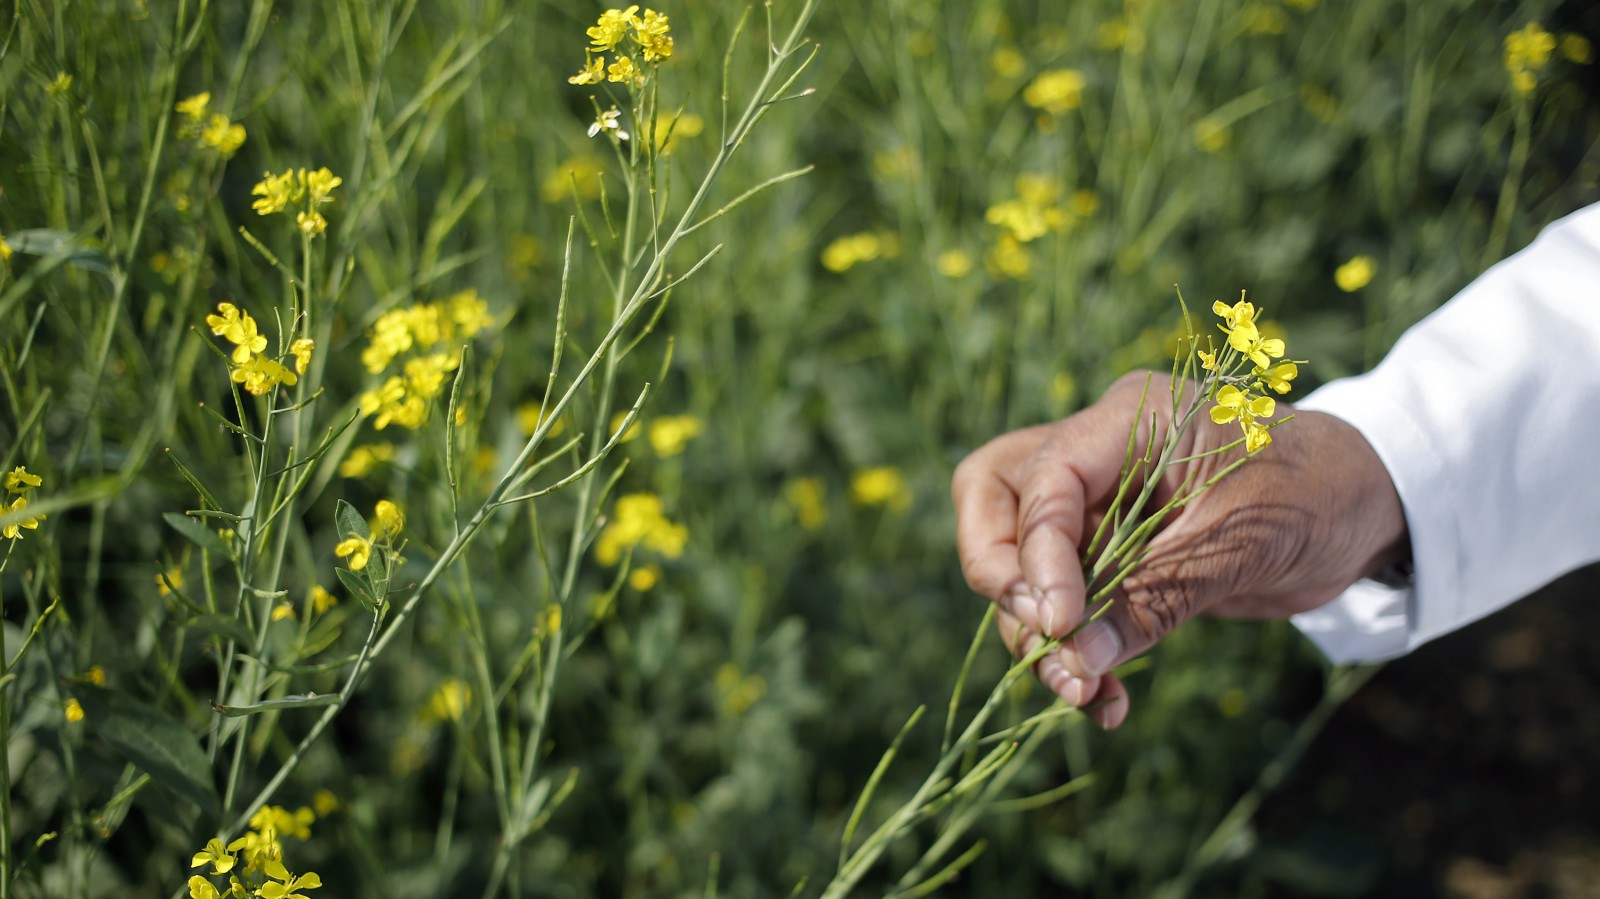 An Indian scientist holds a genetically modified (GM) rapeseed crop under trial in New Delhi February 13, 2015.